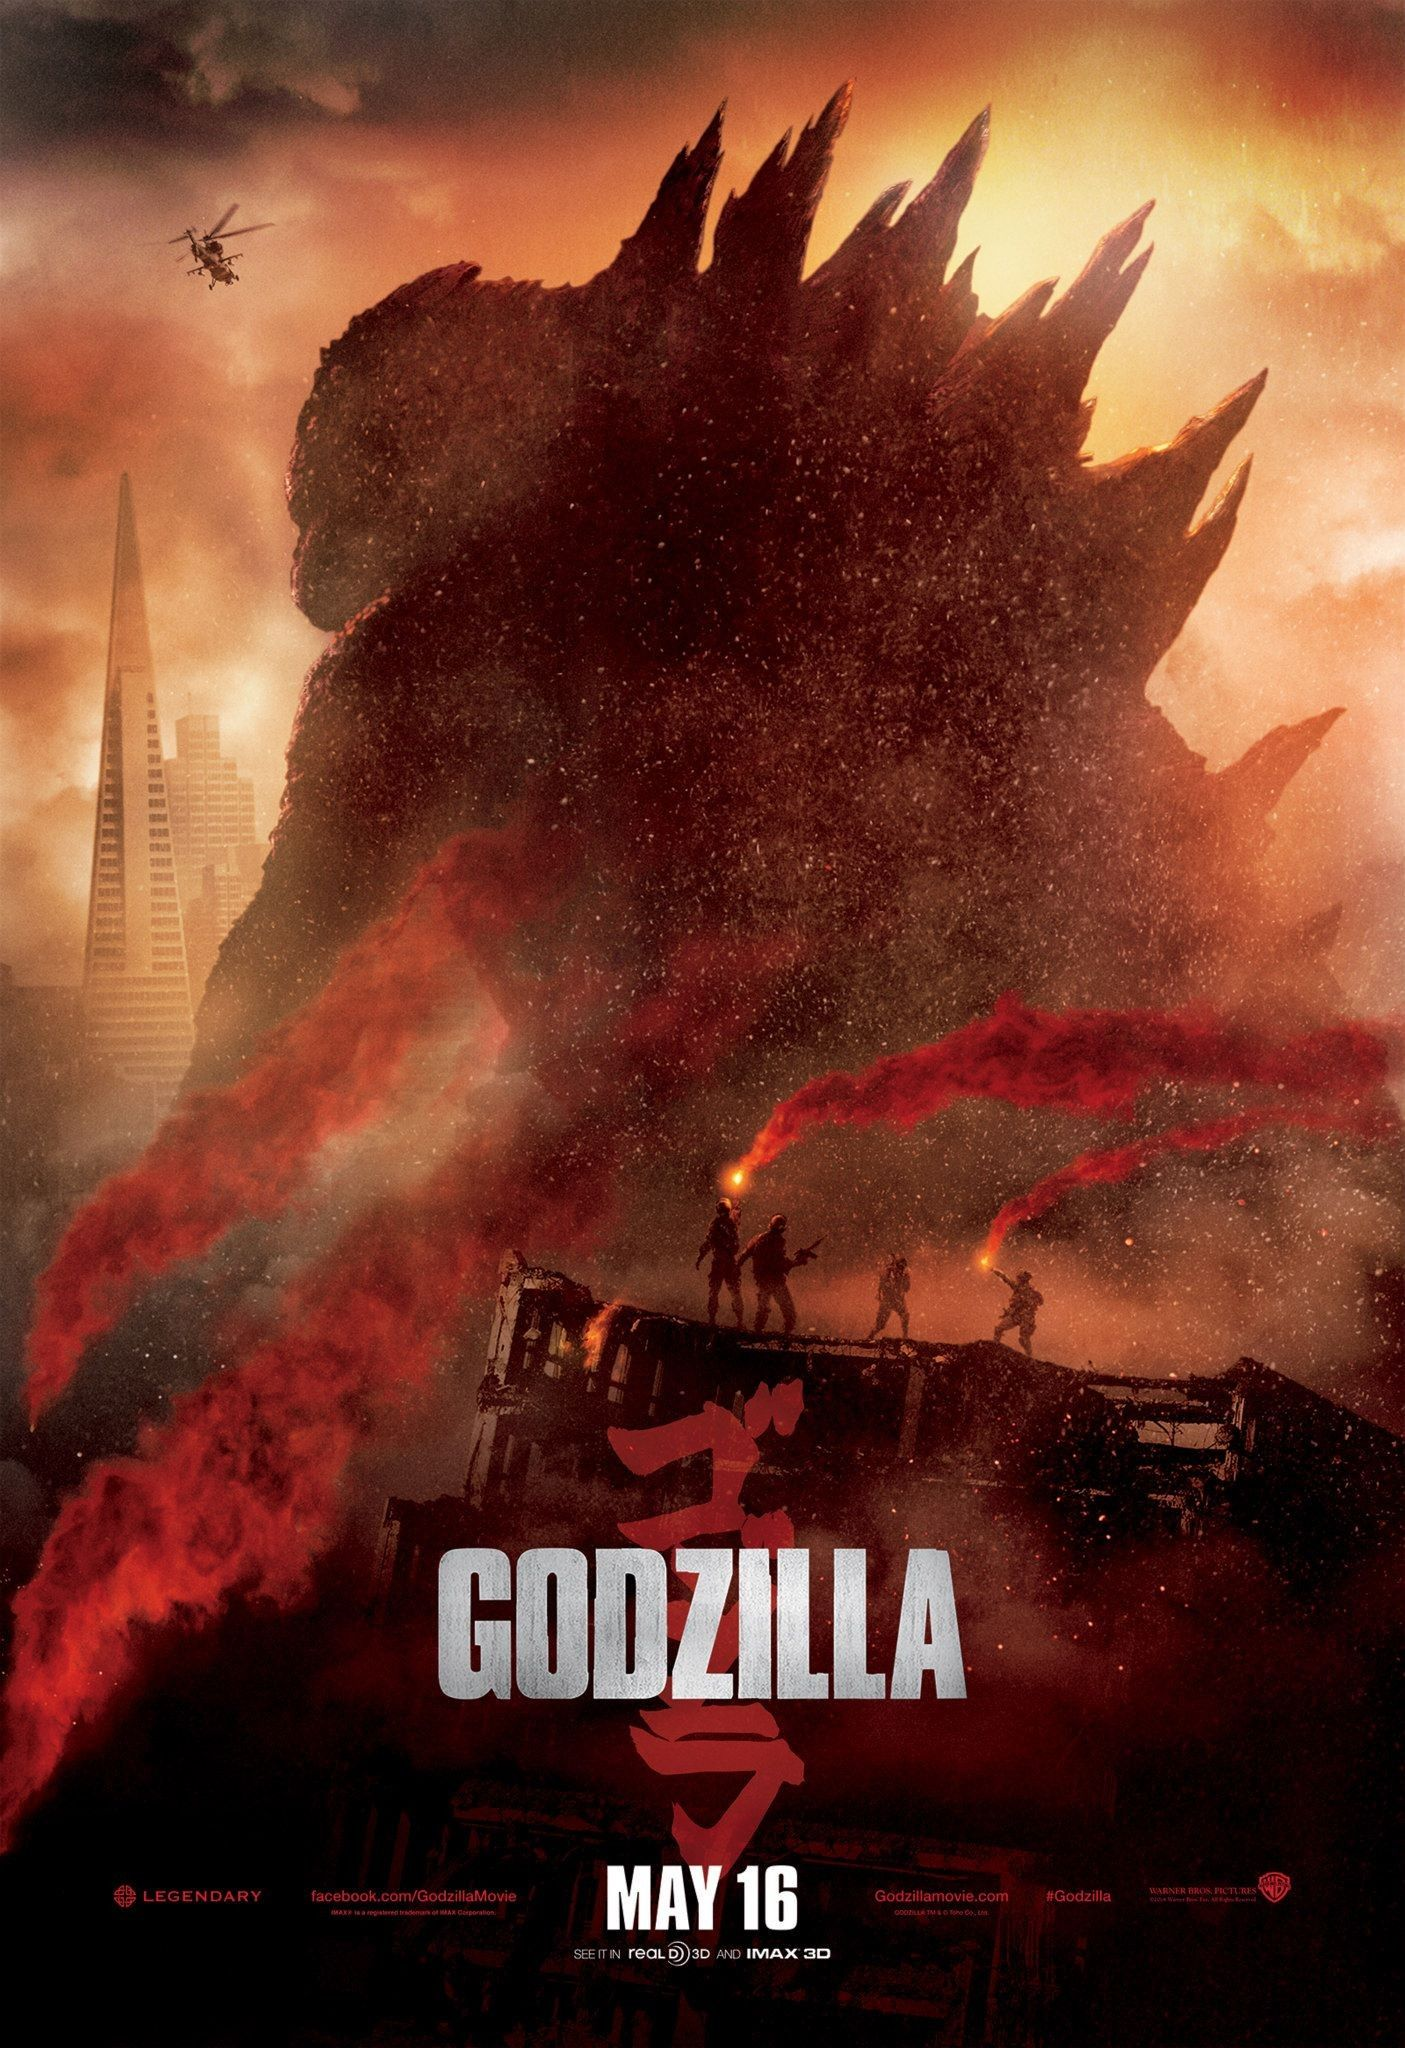 Godzilla posters the amazing spider man 2 poster fading for Movie photos for sale